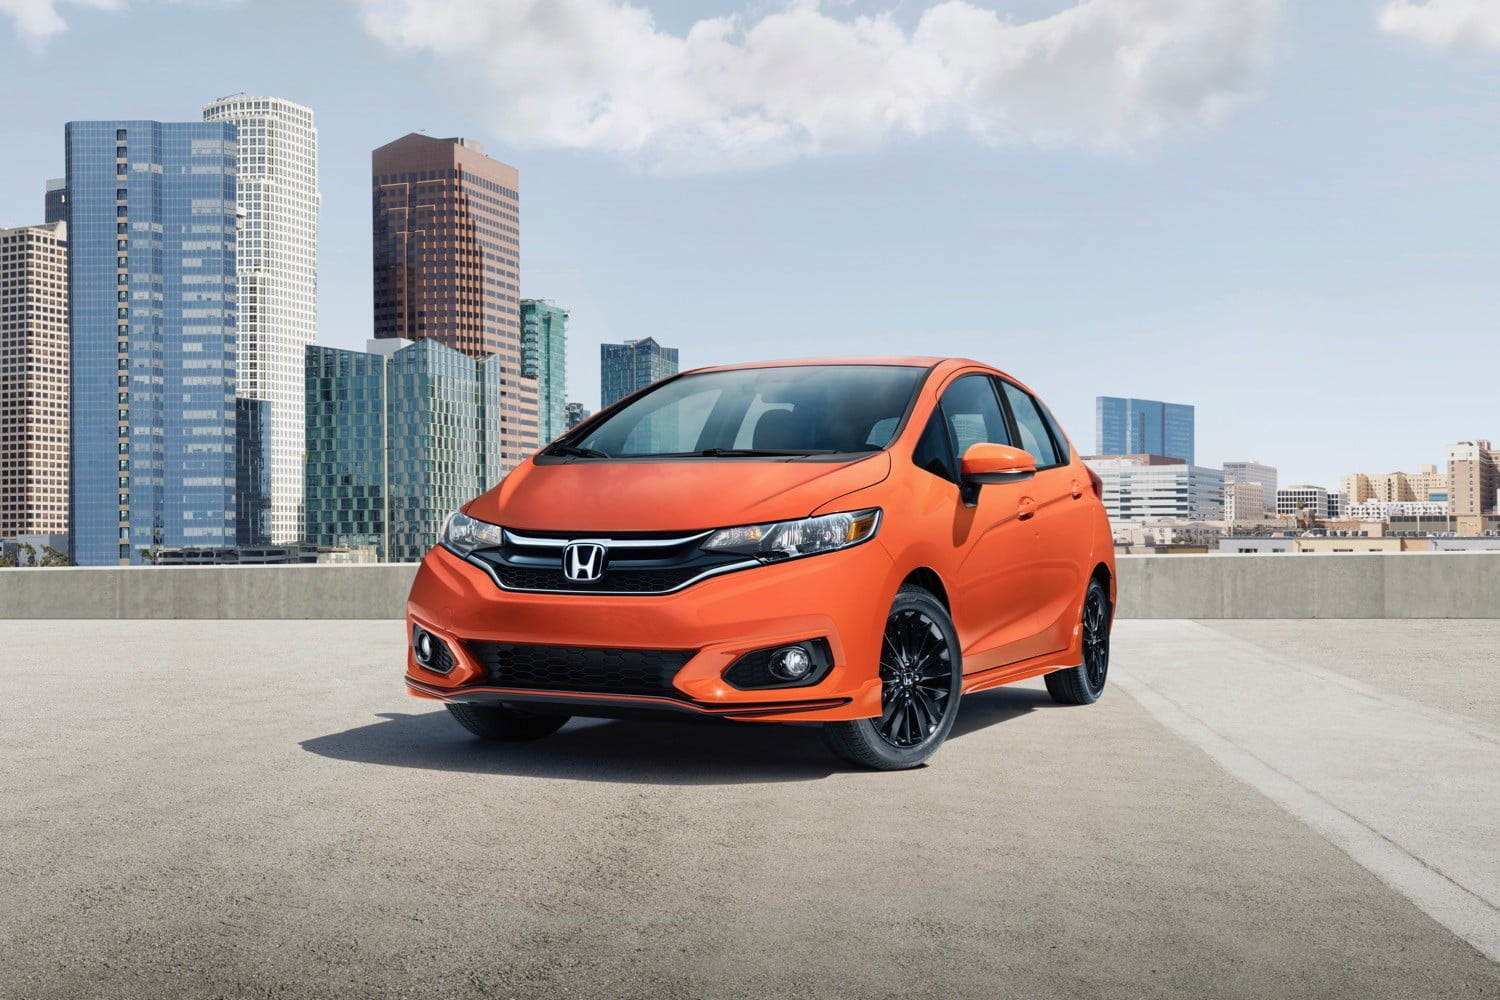 Why Should You This The Fit Features Impressive Fuel Economy Without Sacrificing Practicality